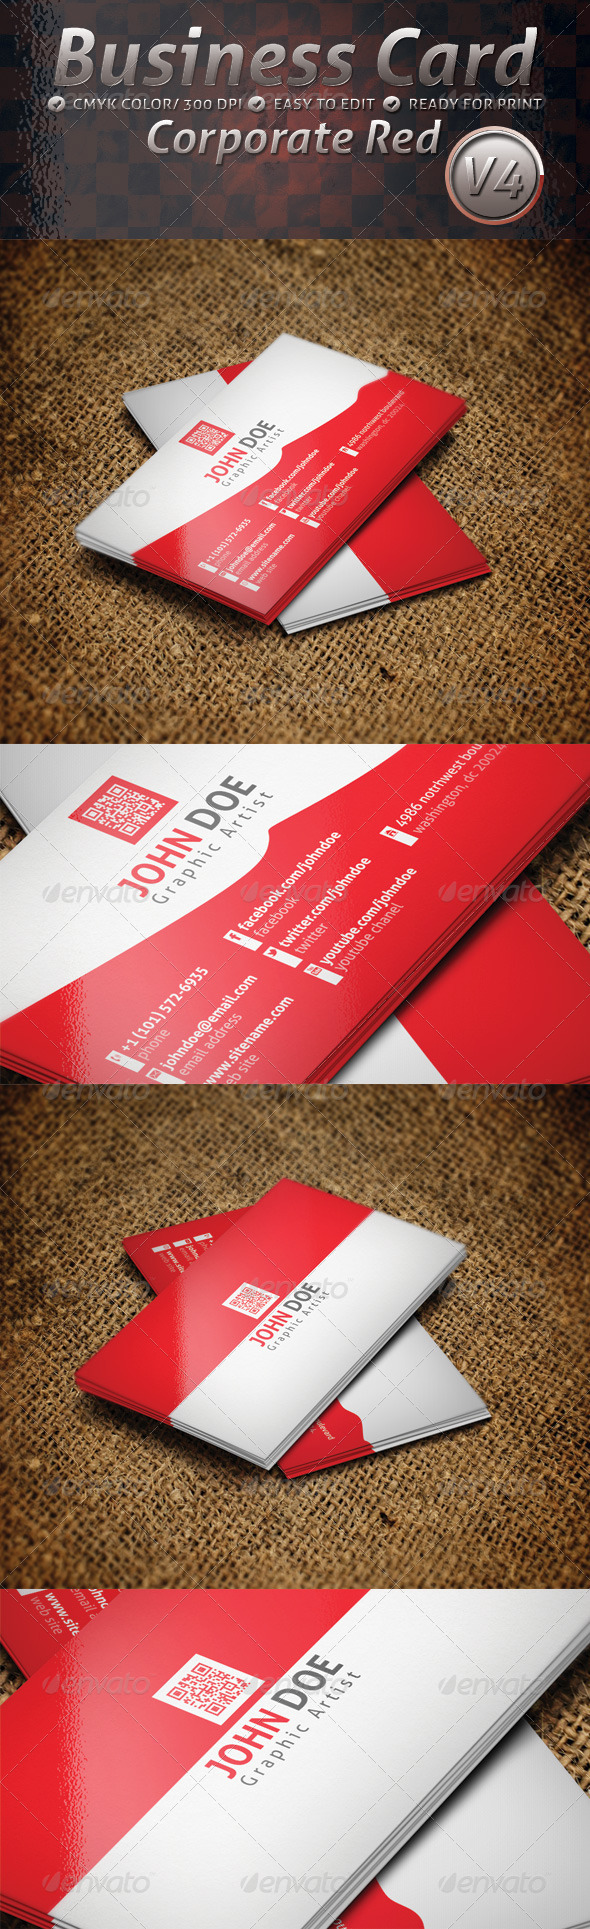 Business Card Corporate V4 - Corporate Business Cards